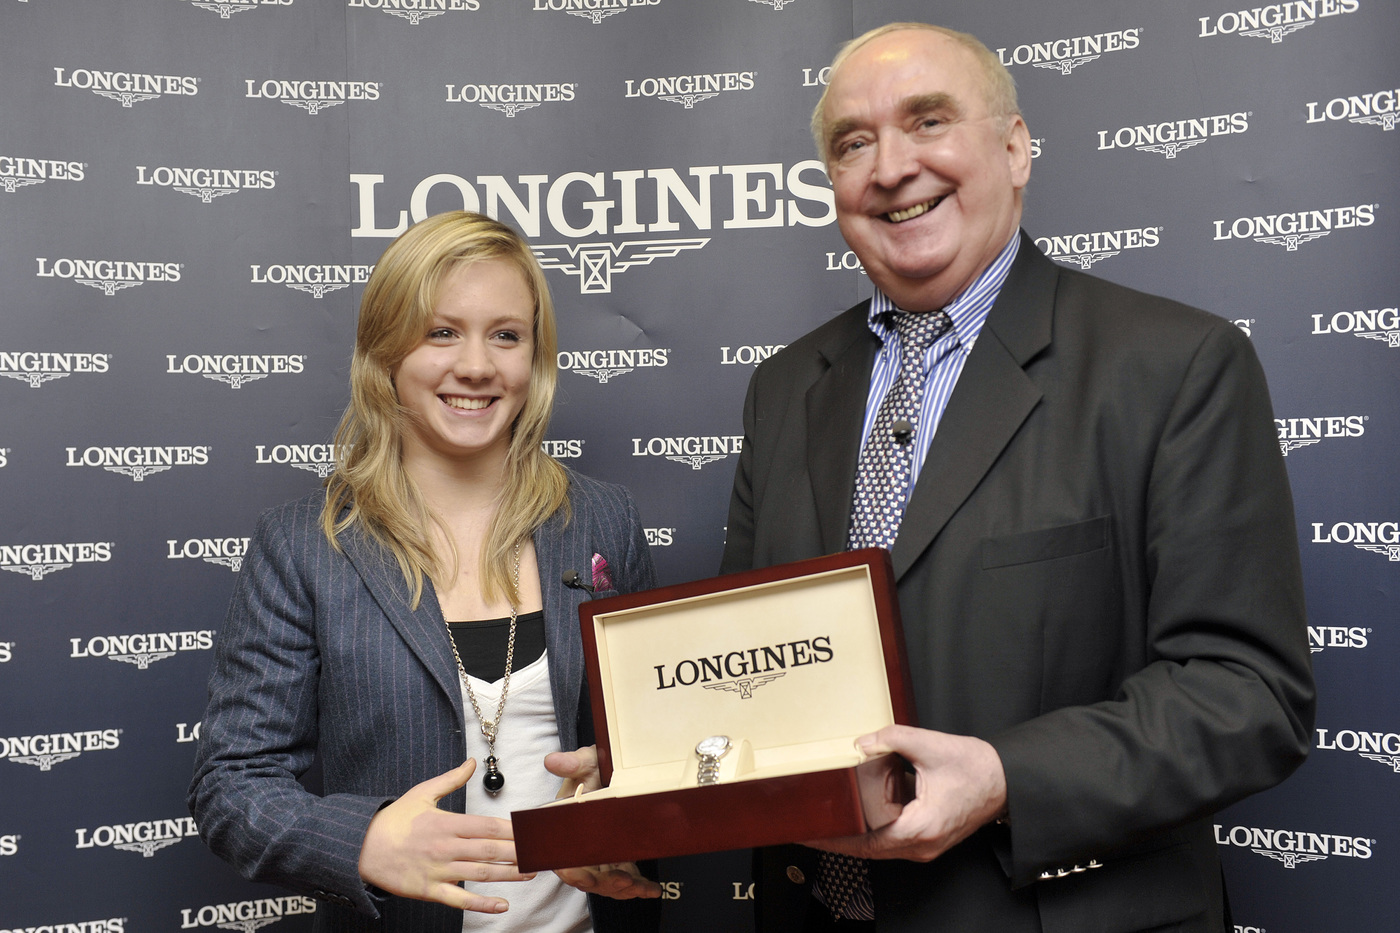 Longines Gymnastics Event: Ariella Kaeslin visits Longines headquarters 7